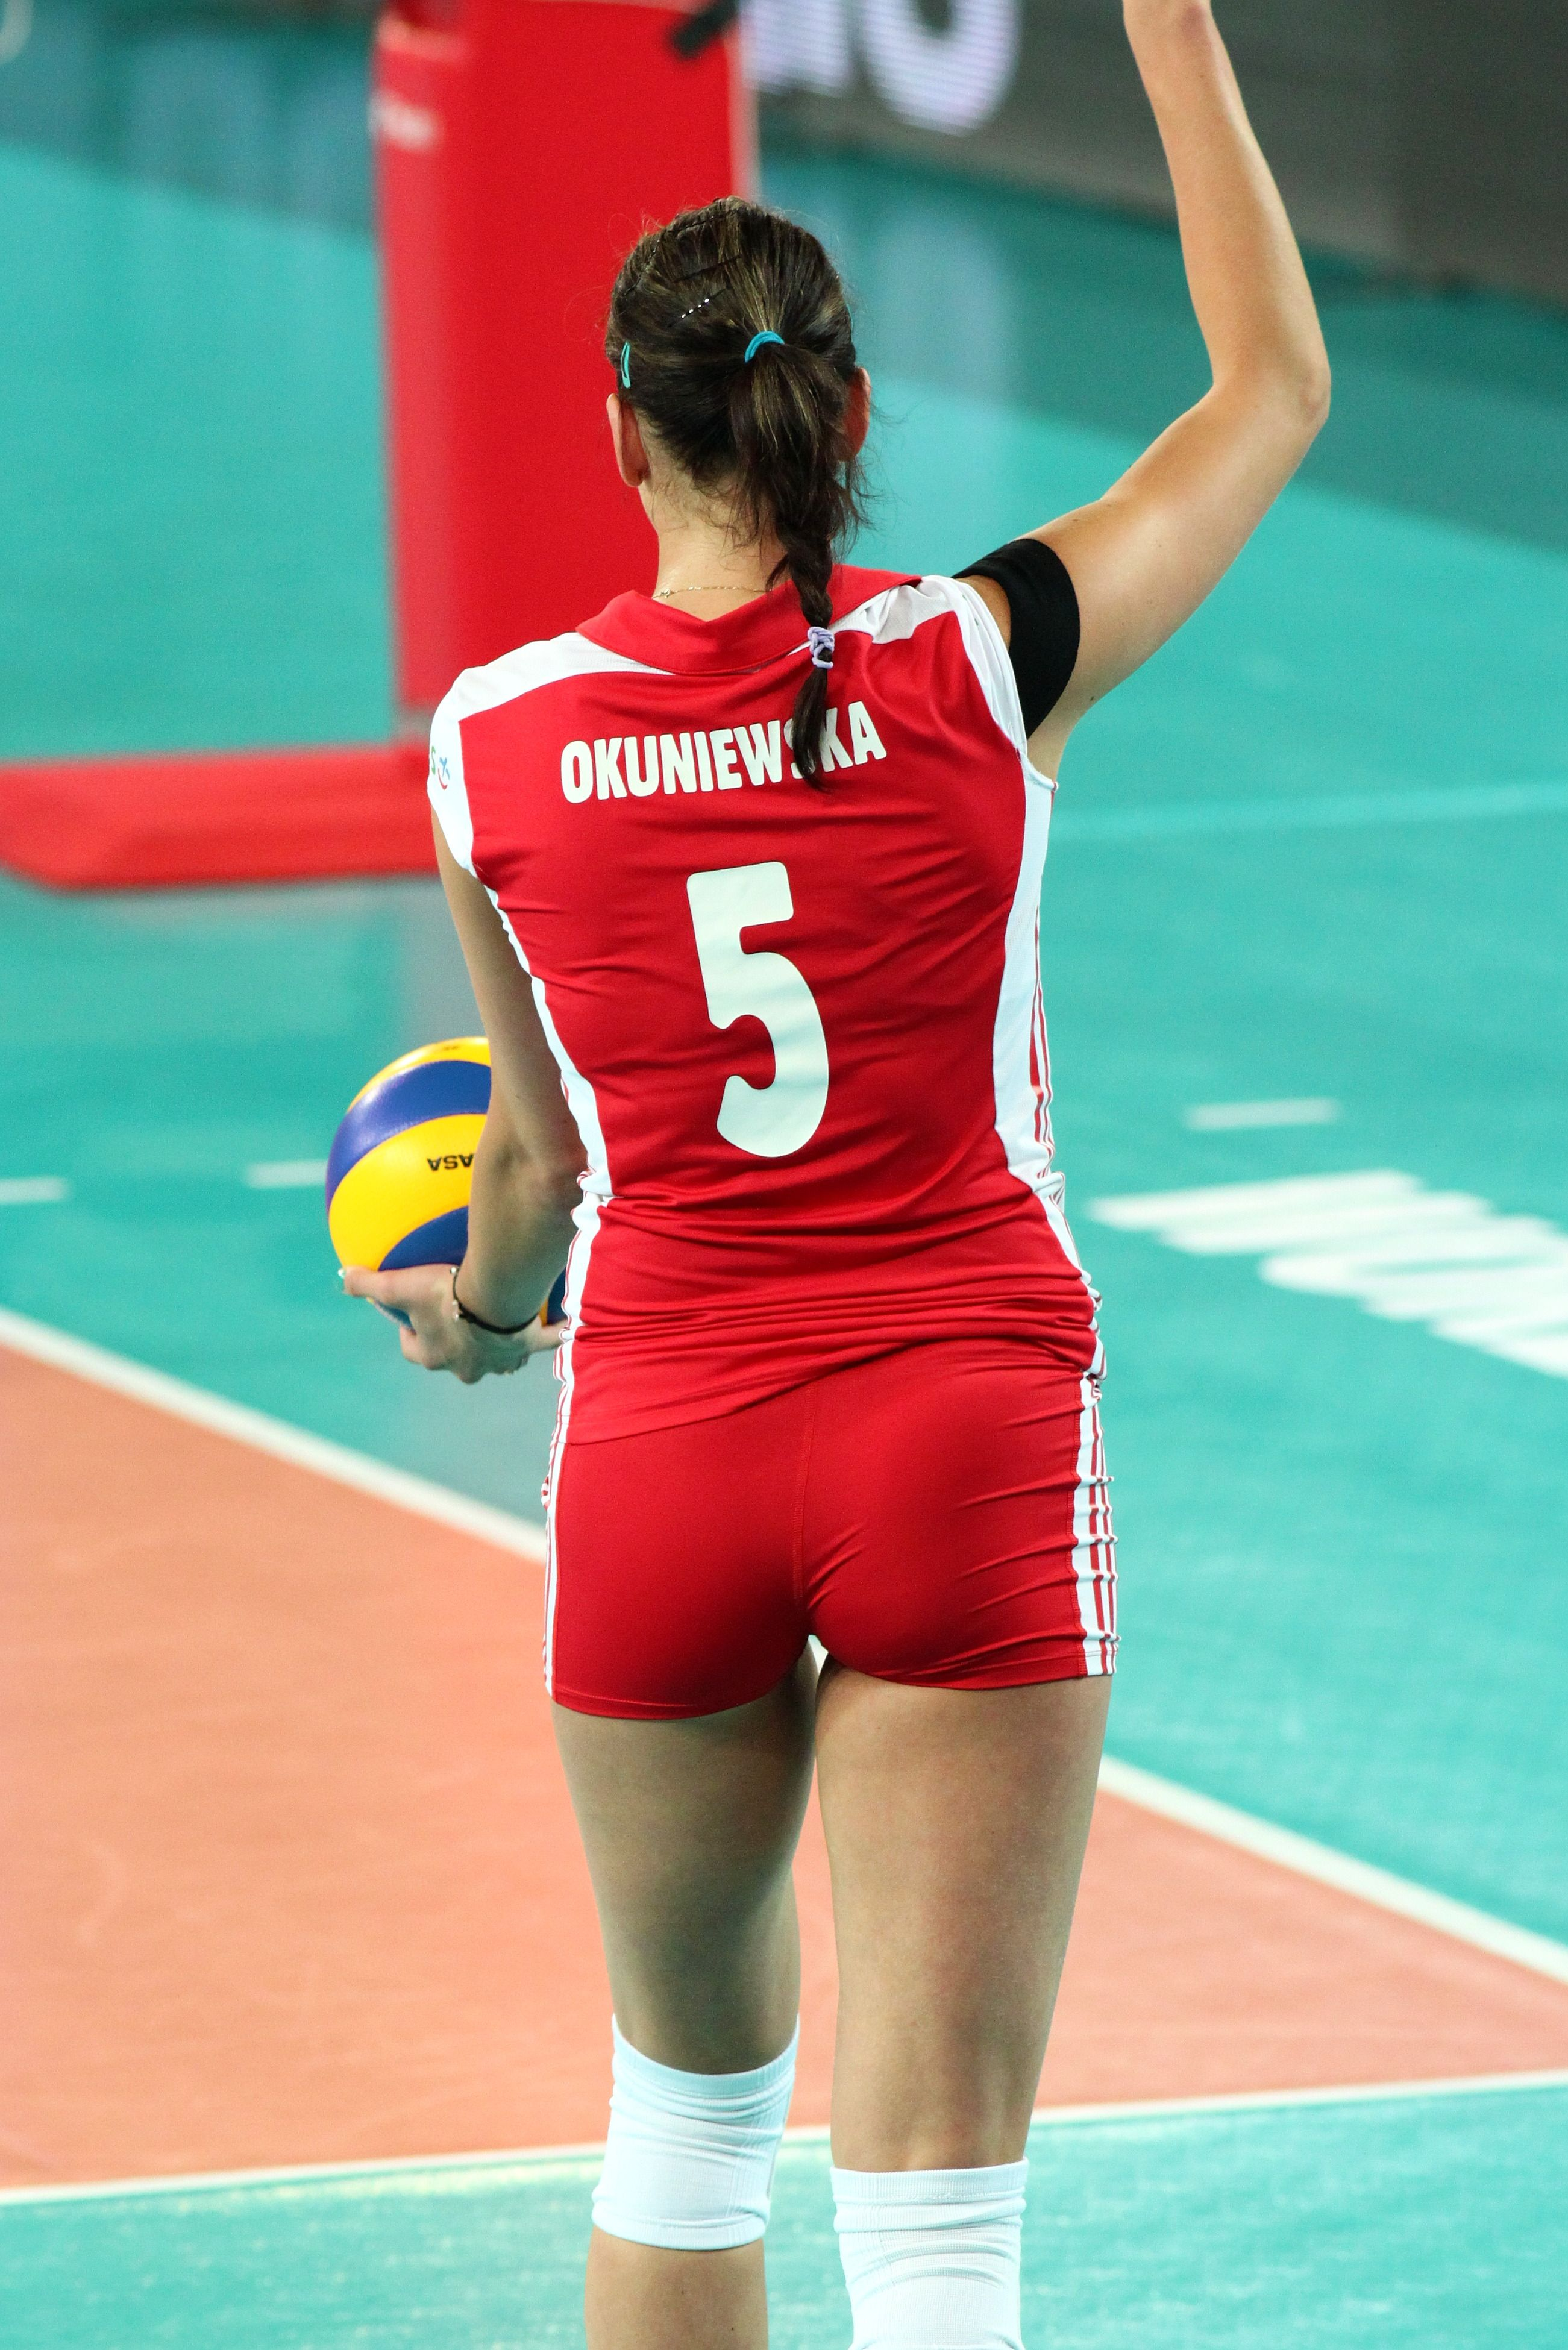 Pin By Greg Manuel On Volleyball Female Athletes Women Volleyball Female Volleyball Players